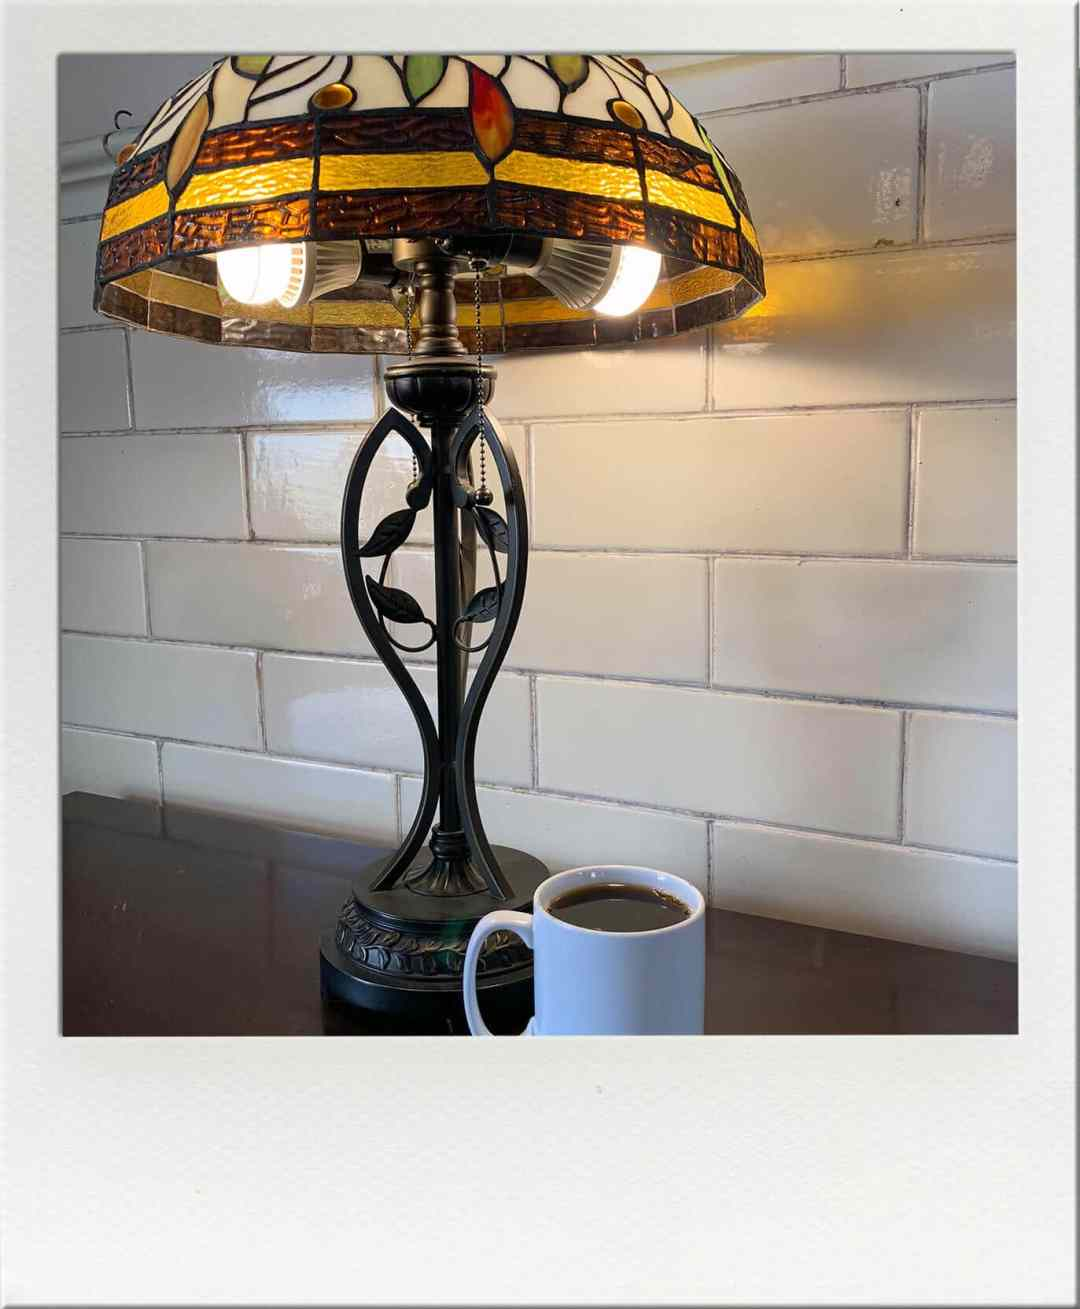 Northtown Coffeehouse Cup of coffee with stained glass lamp